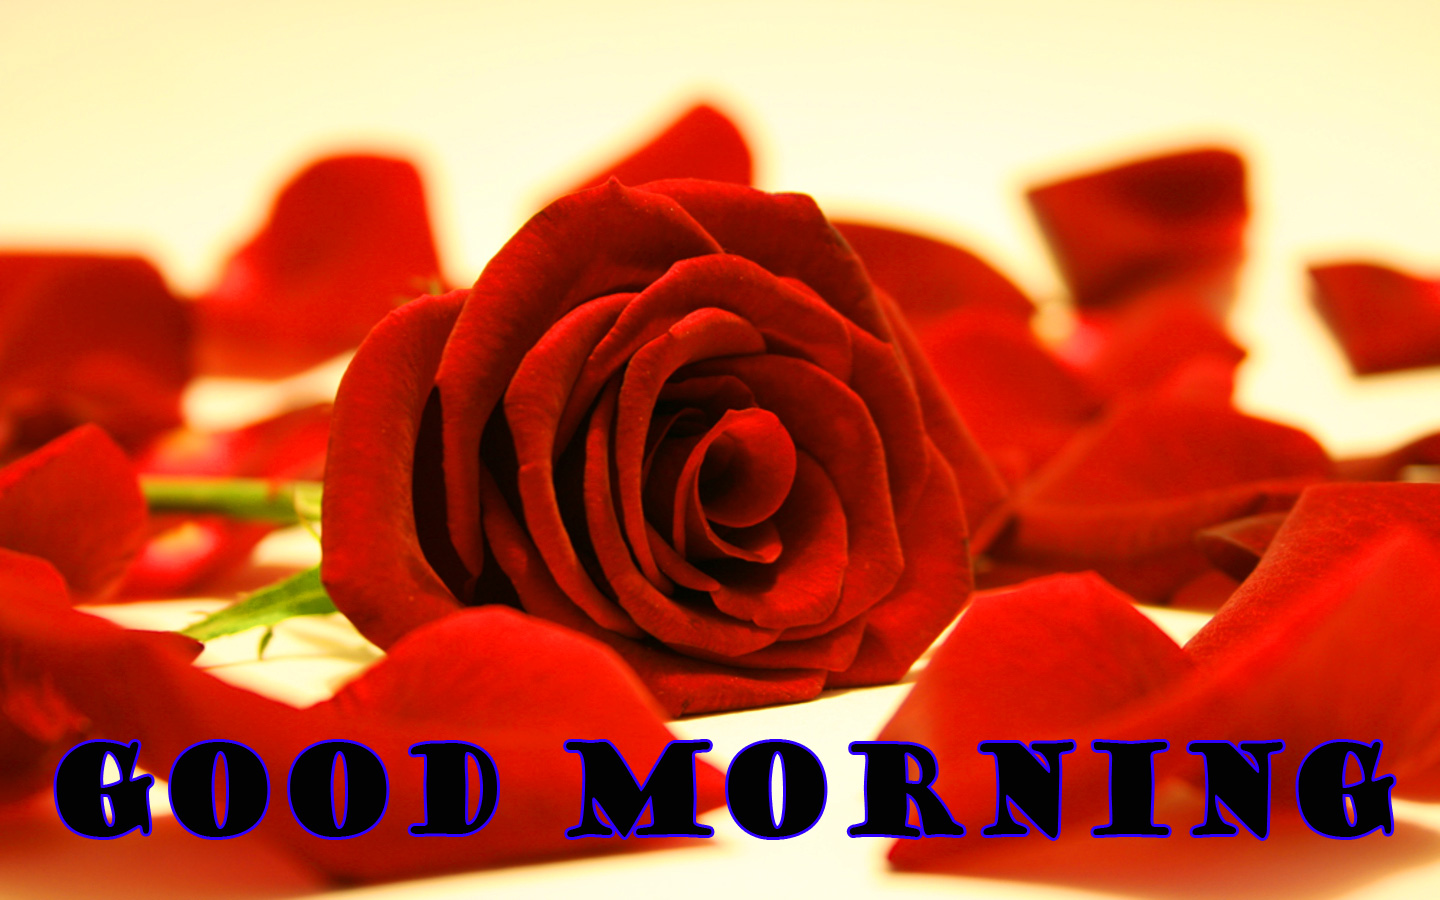 Good Morning Red Rose Photo Wallpaper Pictures HD Download